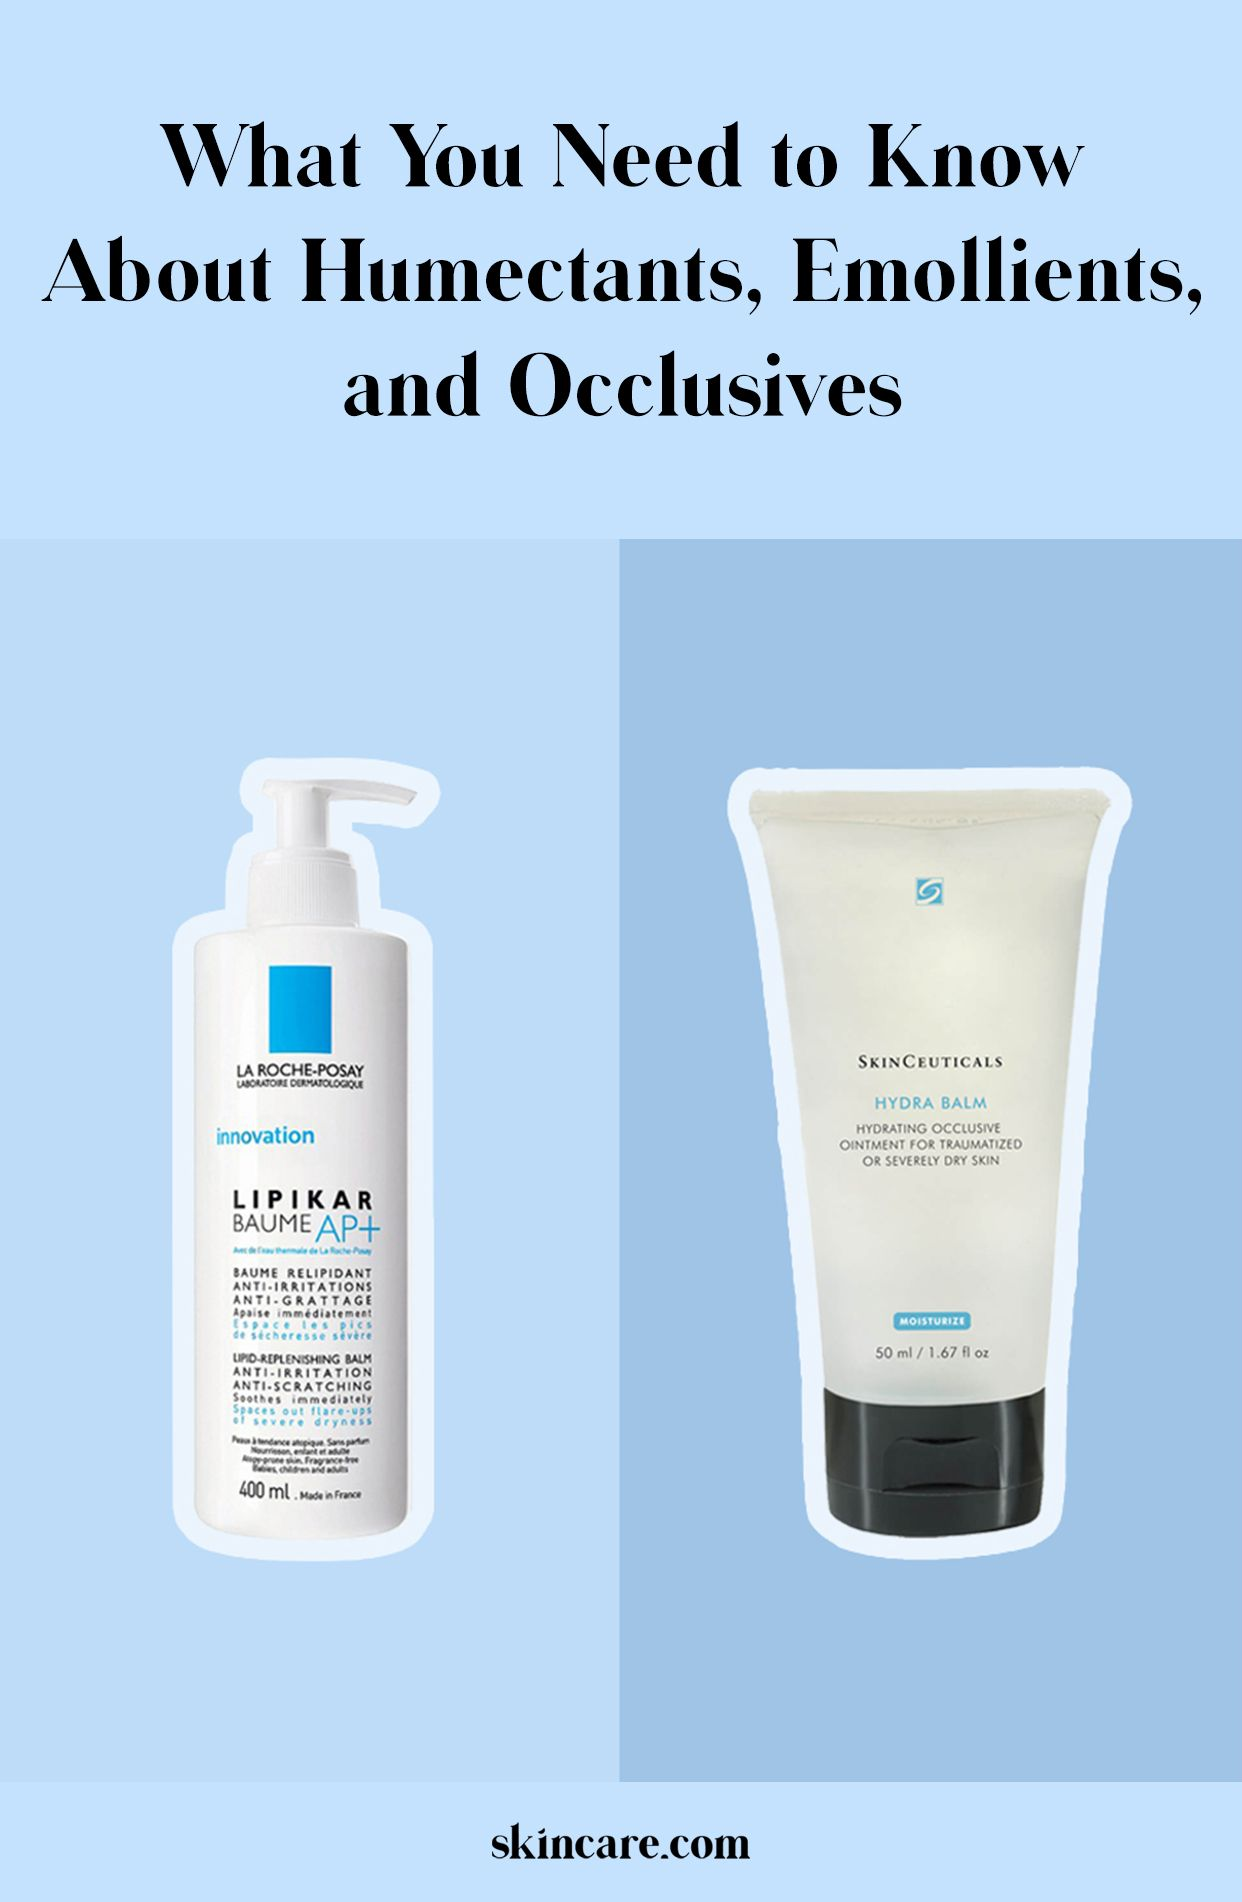 A Definitive Guide To Emollients Humectants And Occlusives Skincare Com By L Oreal Emollient Severe Dry Skin Beauty Skin Care